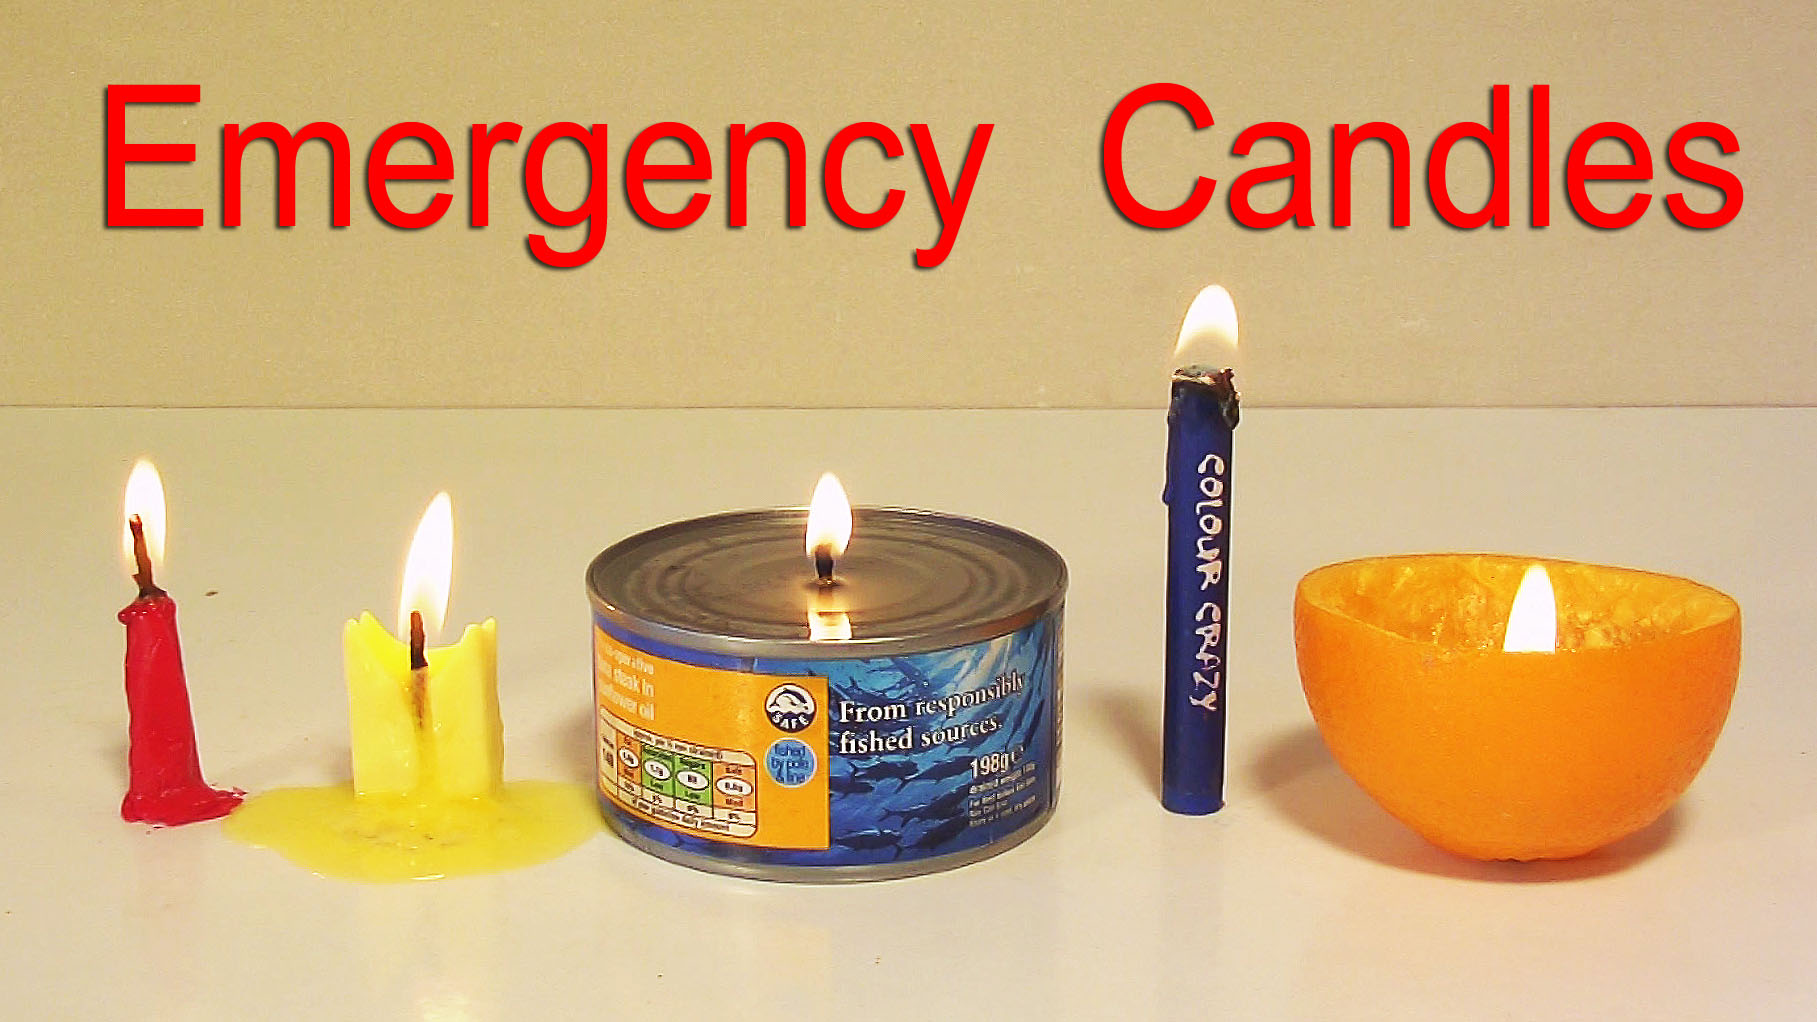 How to Make 5 Emergency Candles